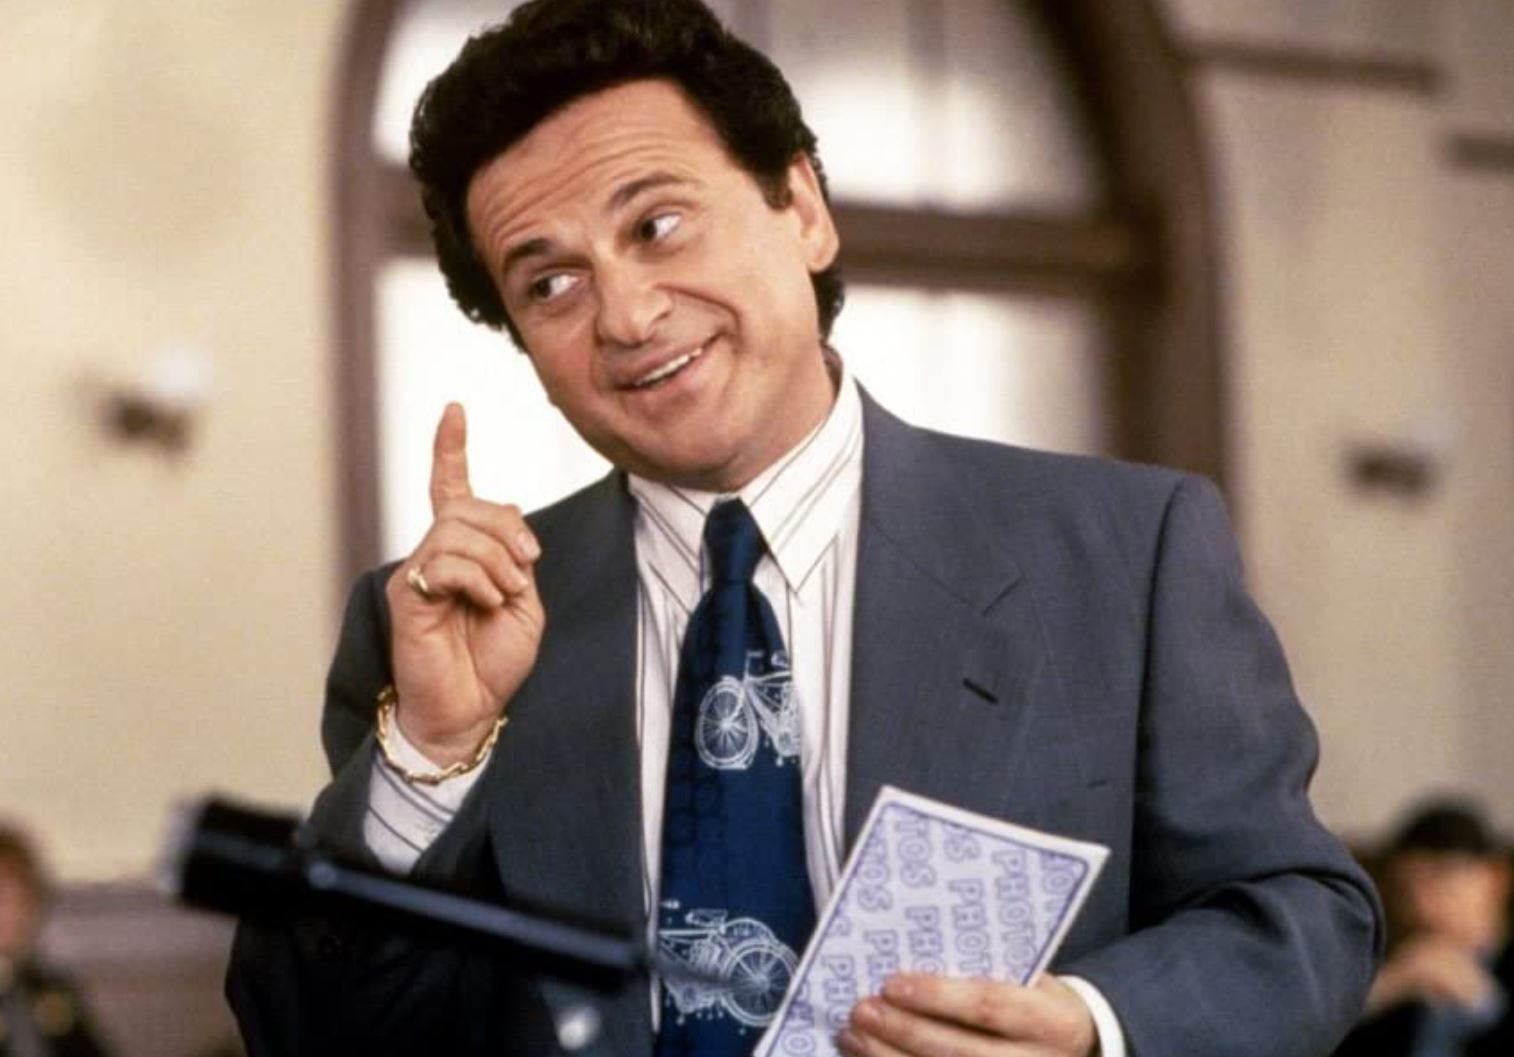 Joe Pesci in 'My Cousin Vinny'